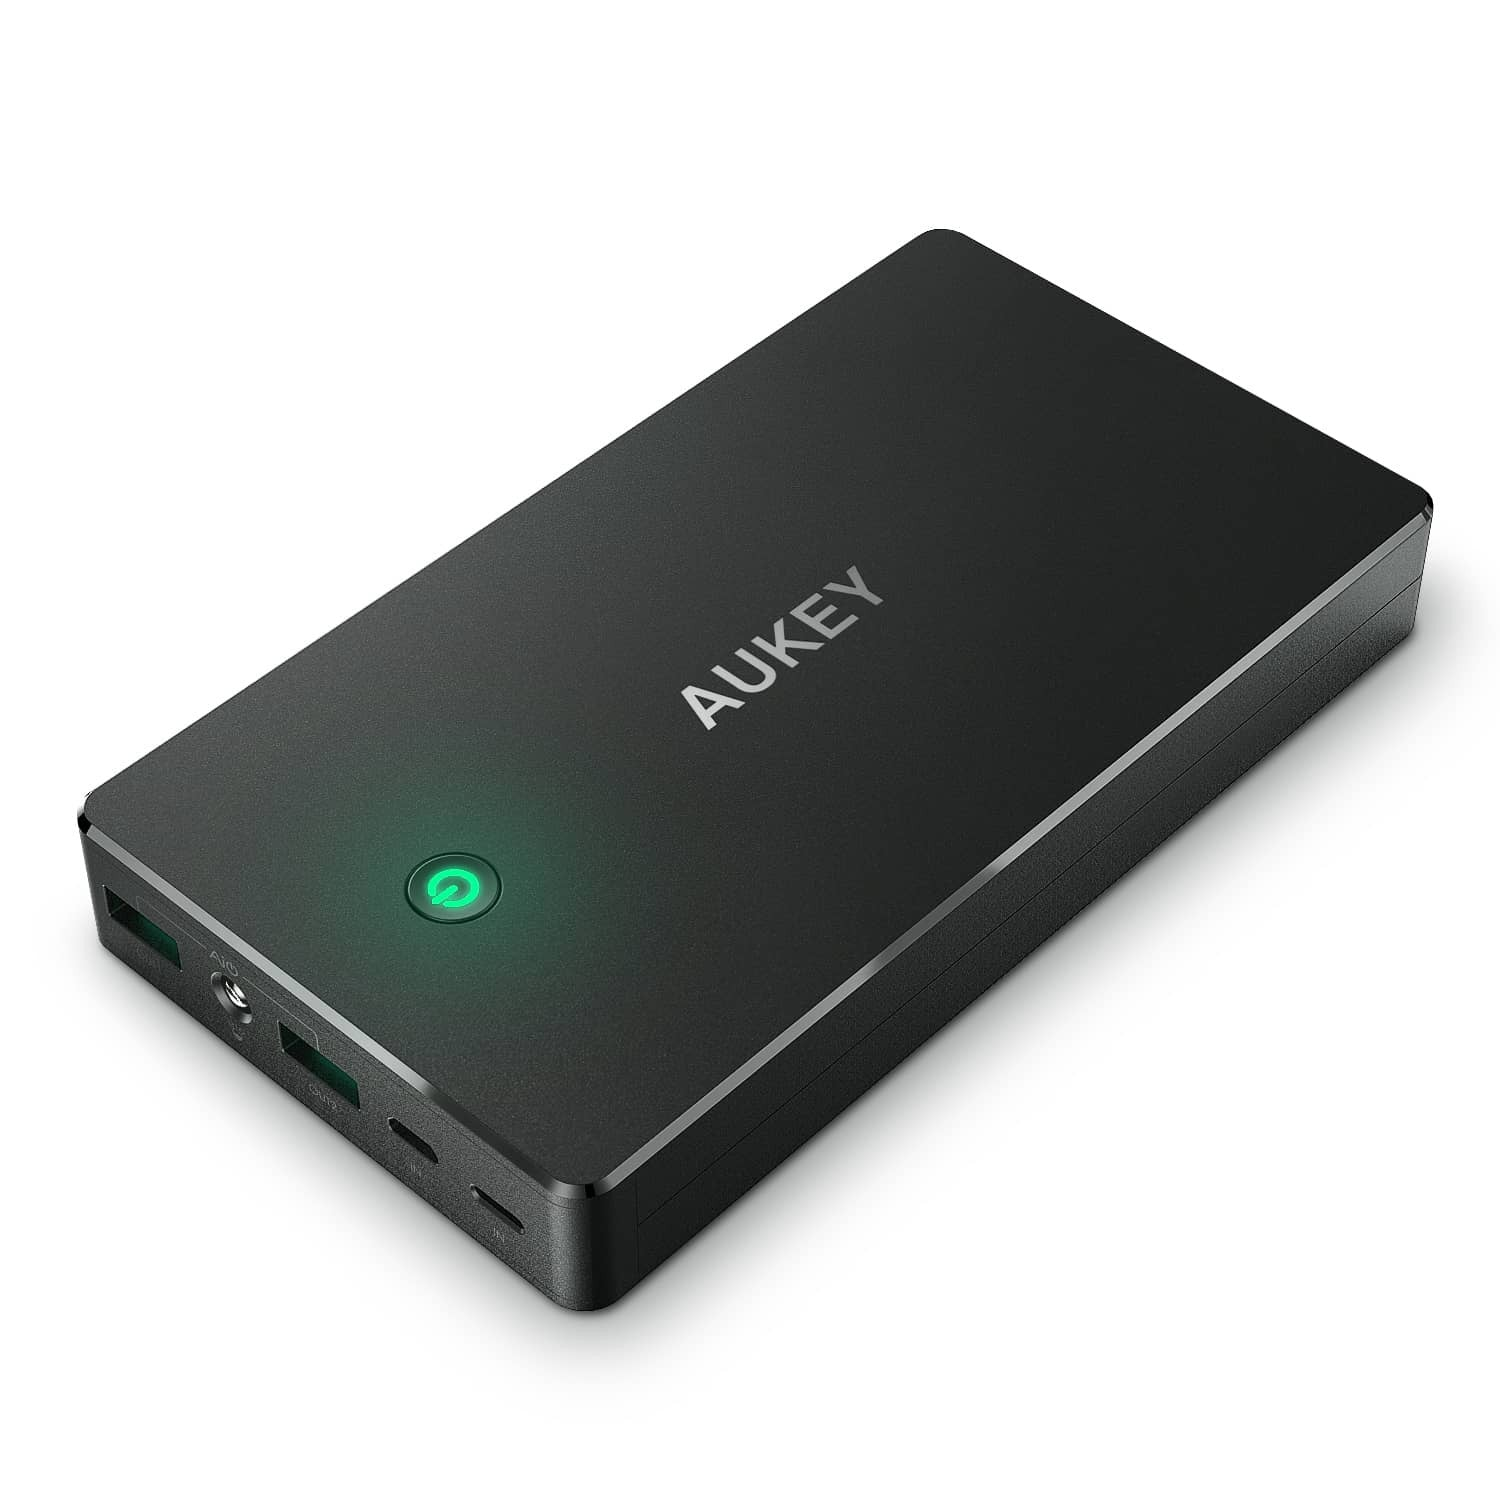 AUKEY PB-Y1 20000mAh Qualcomm Quick Charge 2.0 with USB C Power Bank - Aukey Malaysia Official Store